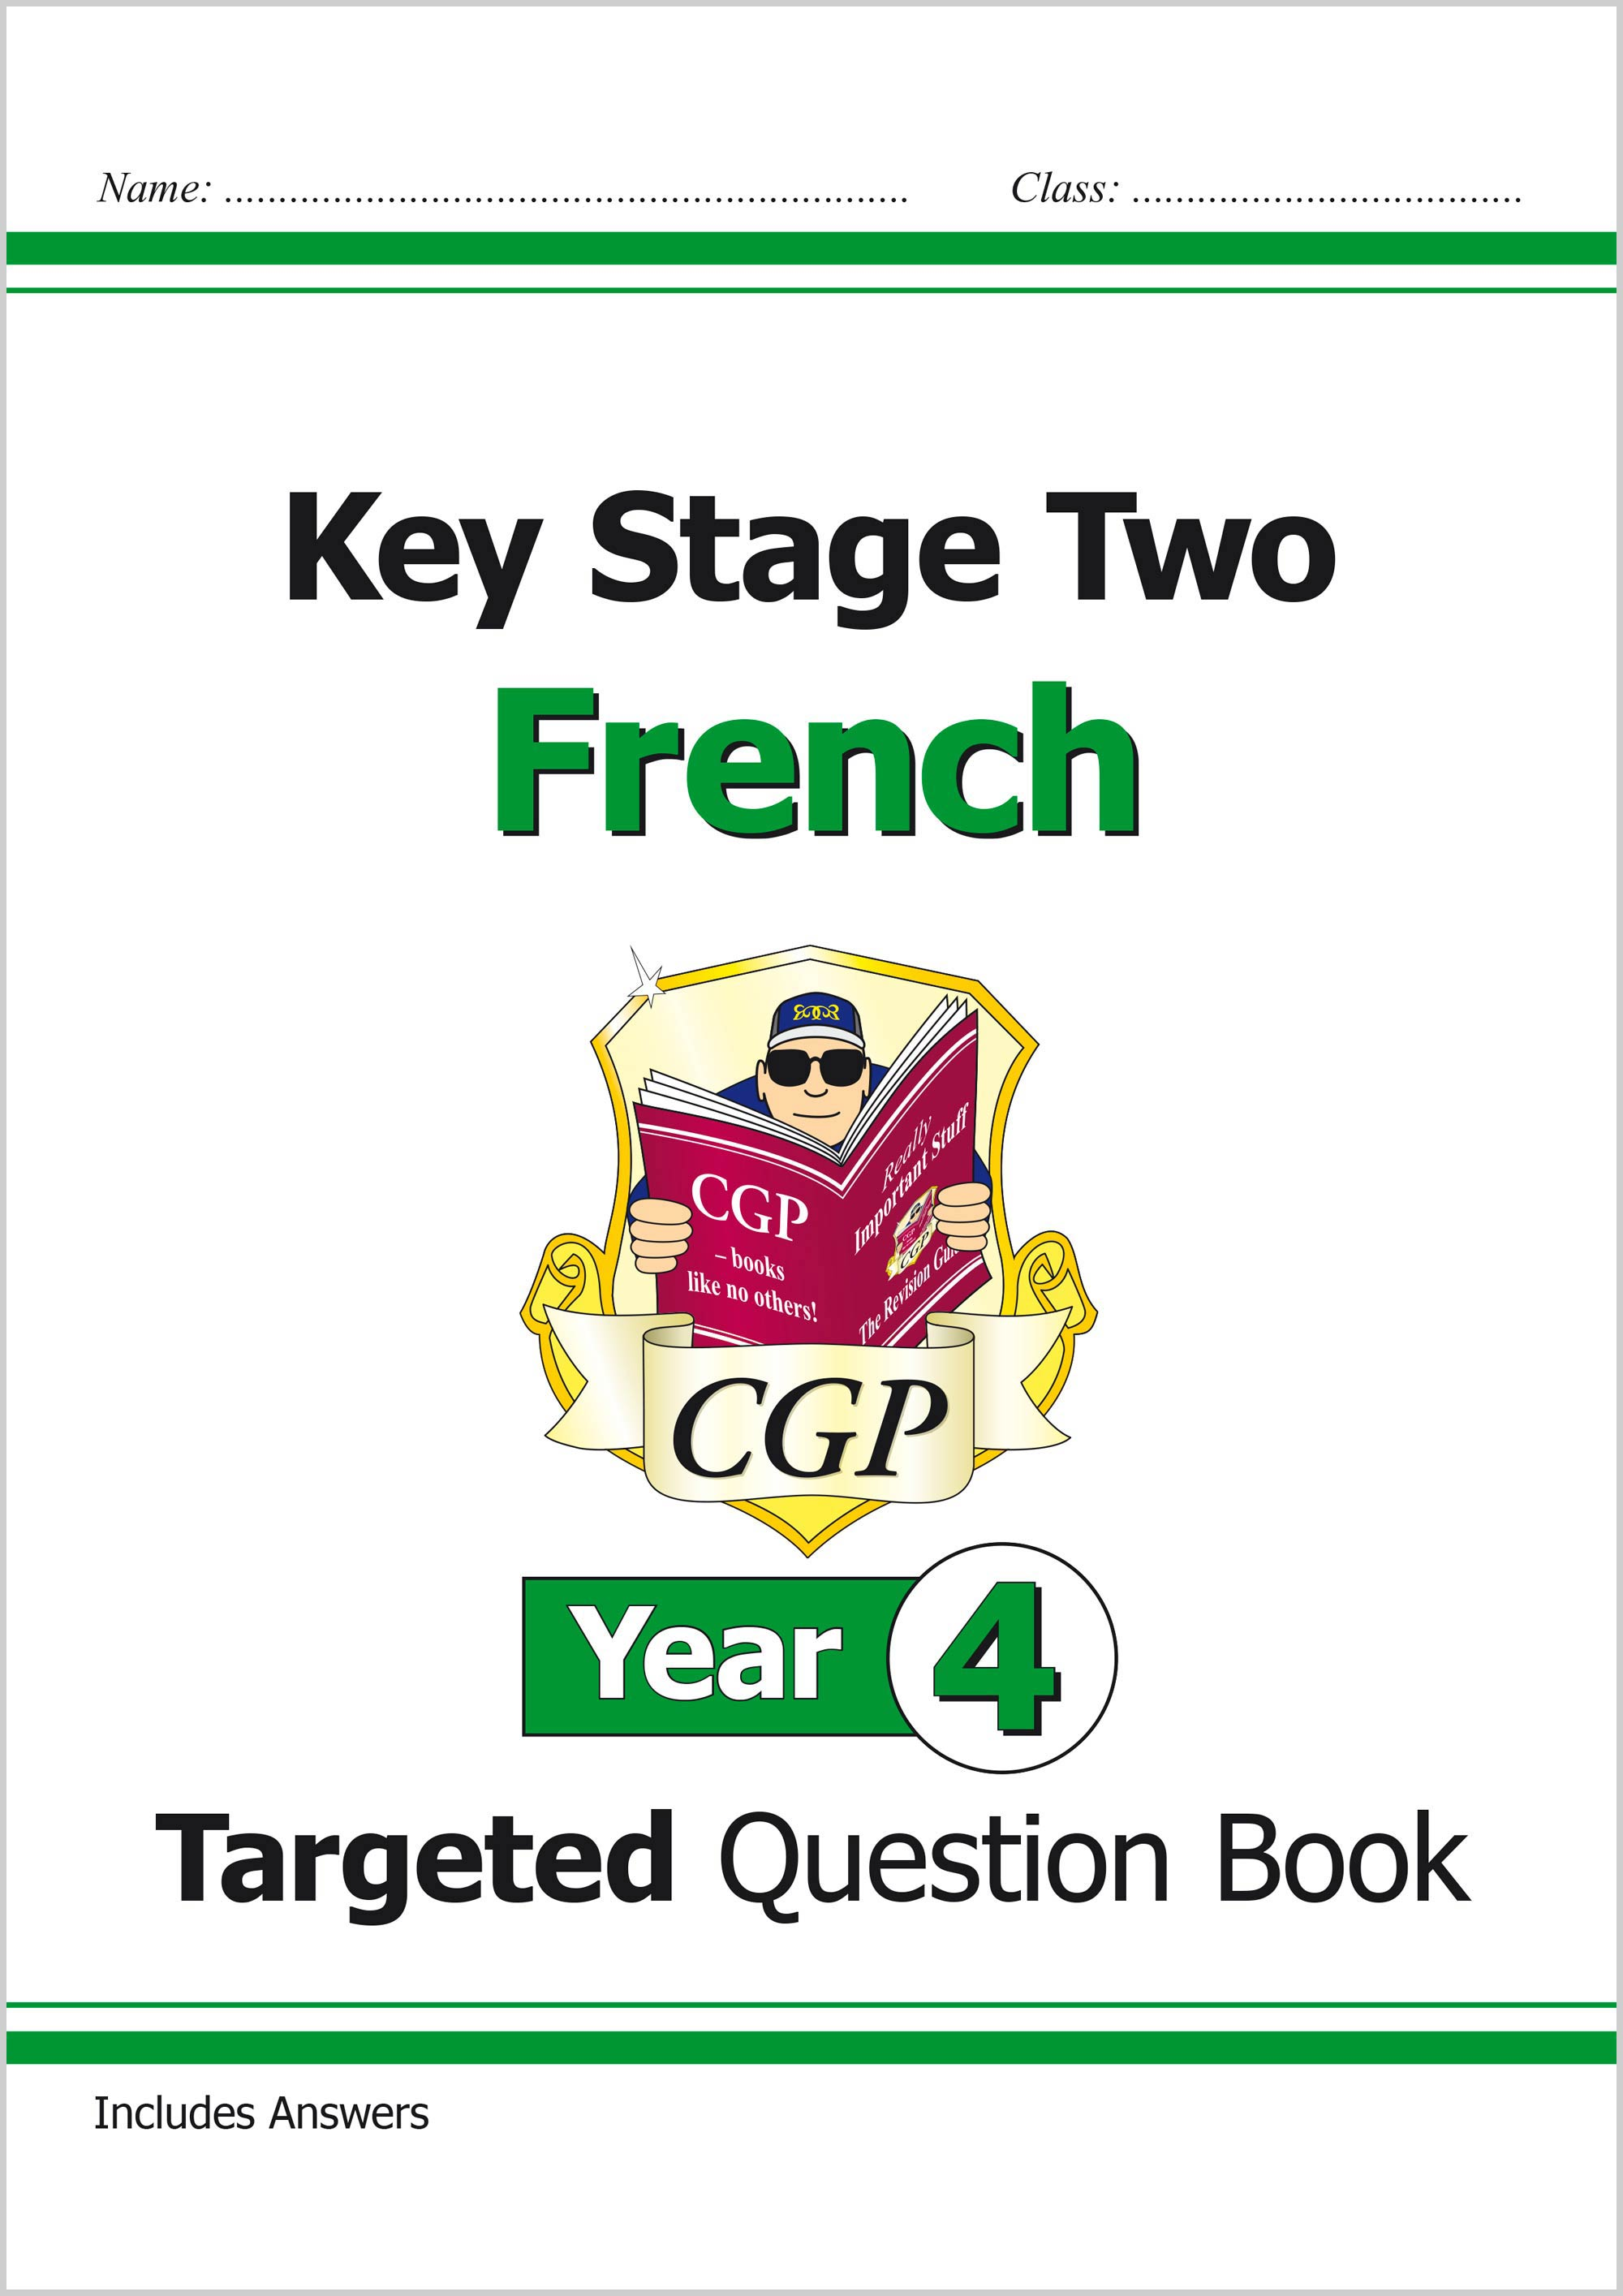 F4Q21 - New KS2 French Targeted Question Book - Year 4